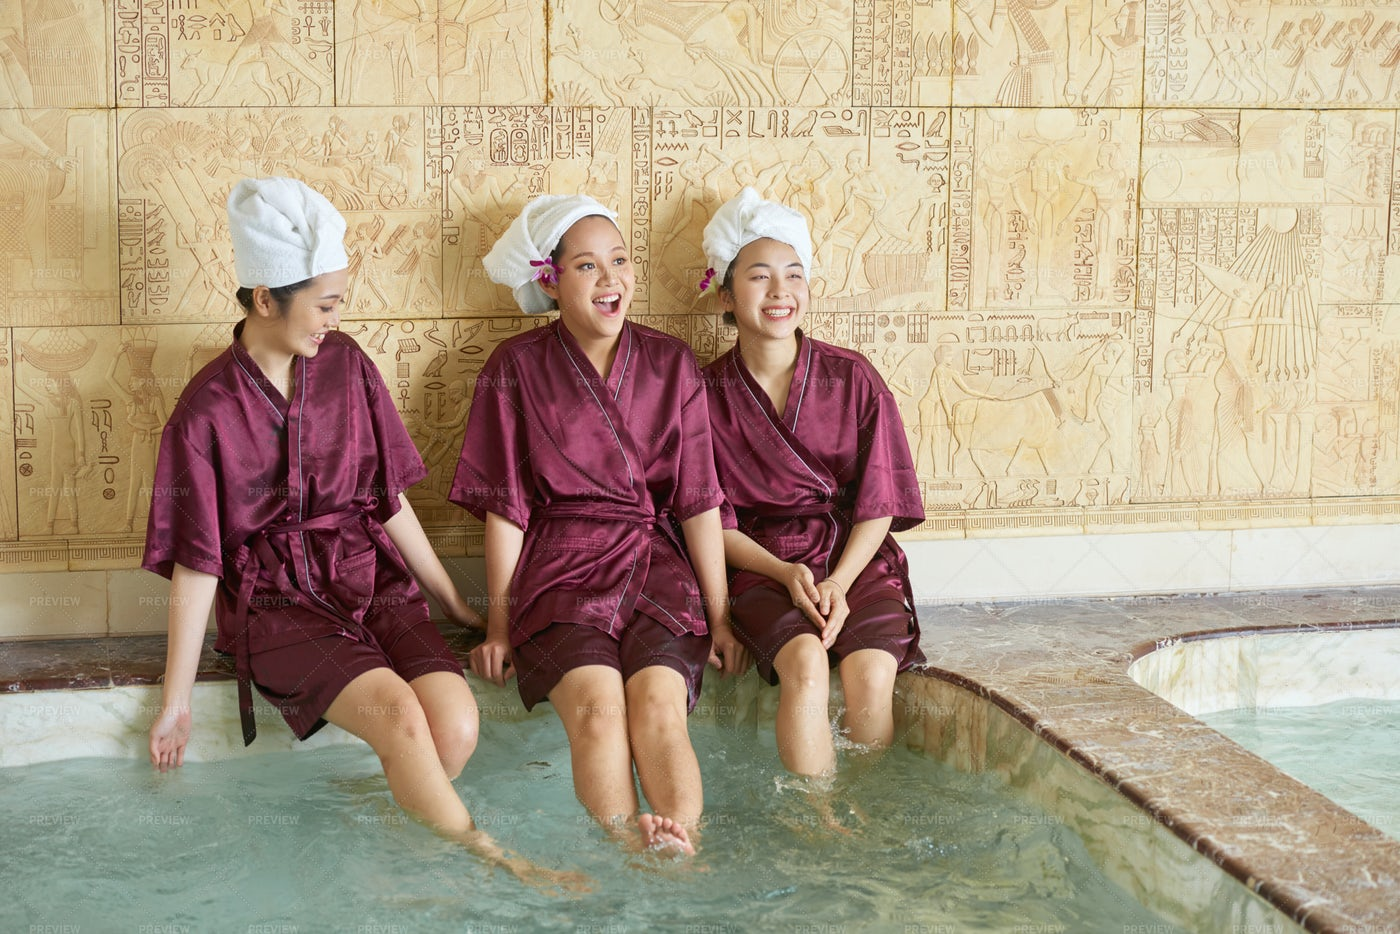 Female Friends Relaxing In The Pool: Stock Photos